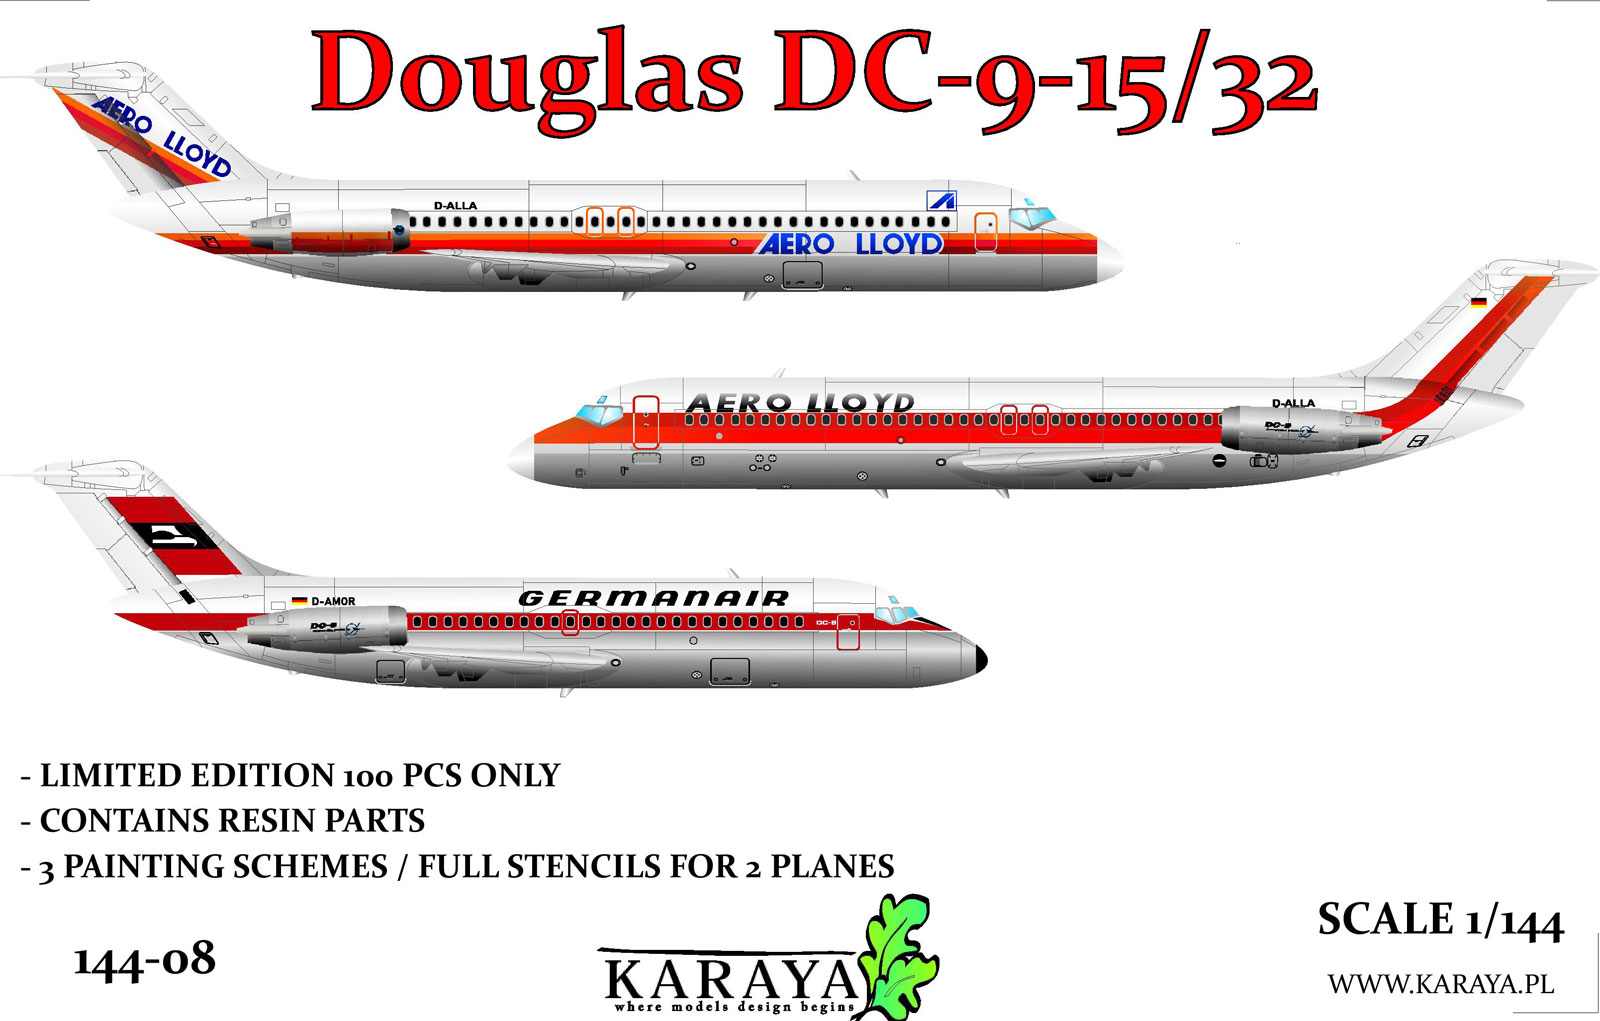 1/144 Douglas DC-9-15/32 limited plastic kit for DC-9 in German